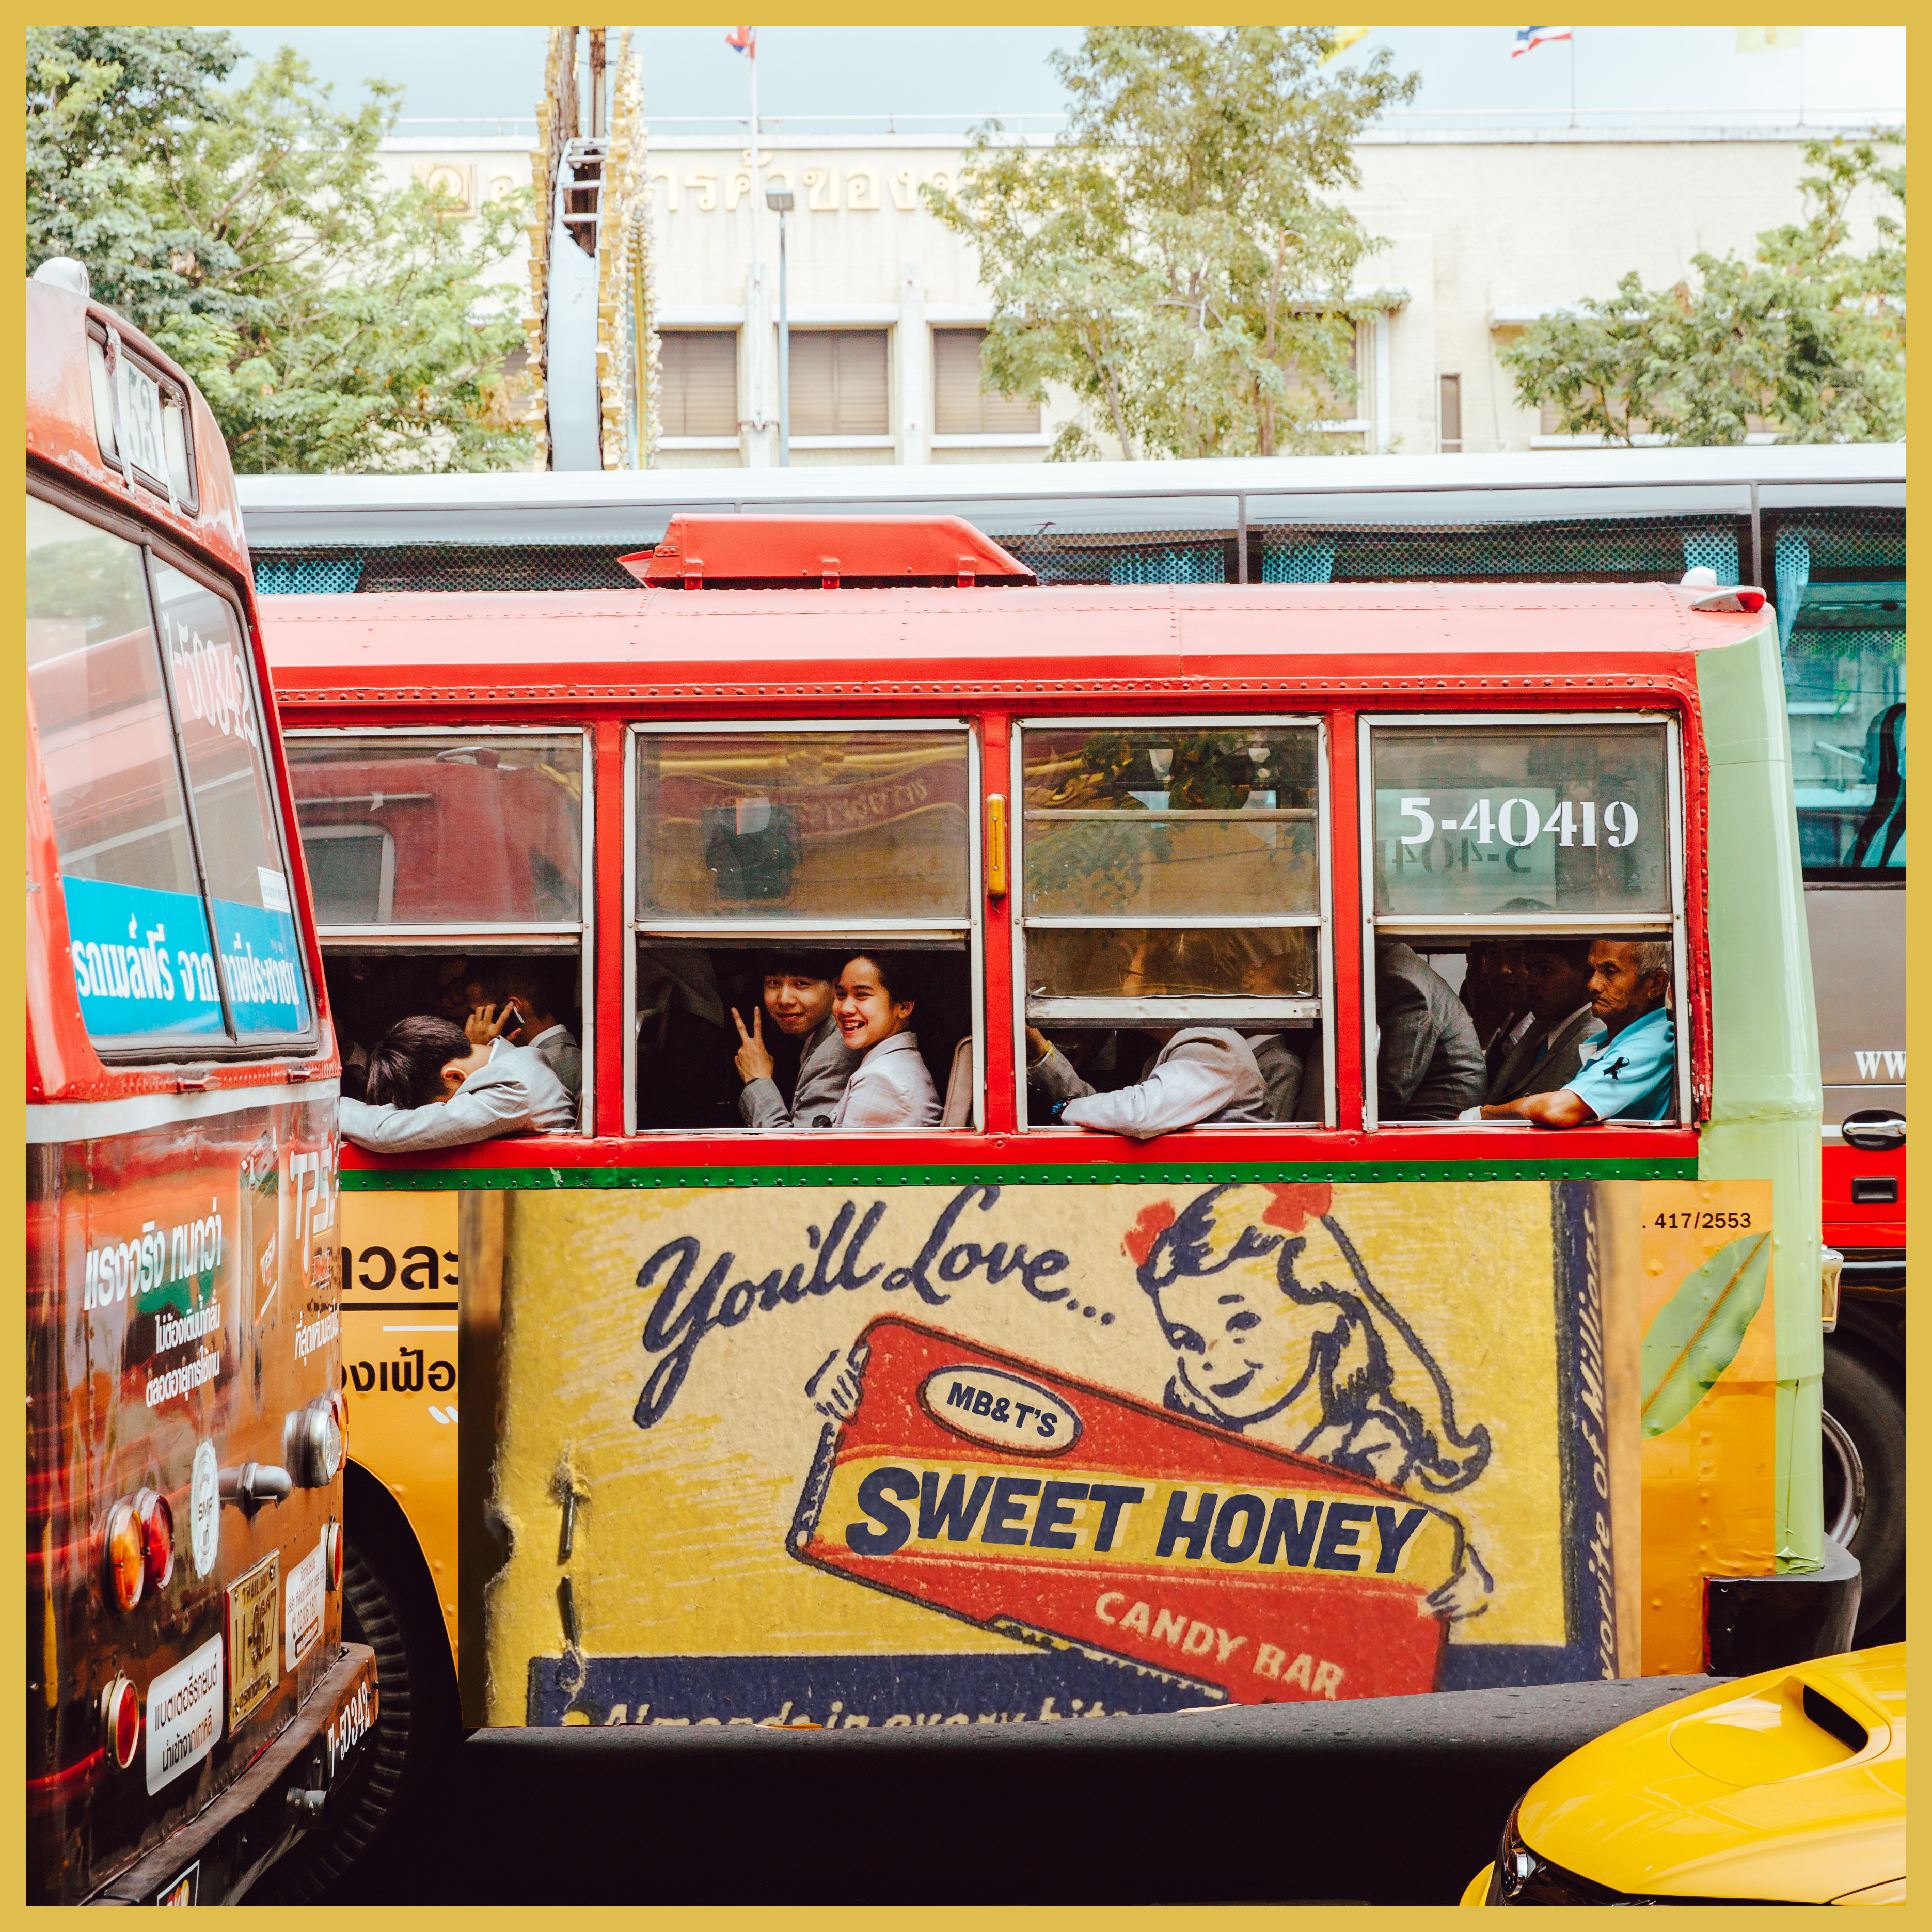 Sweet Honey 2: Bit-O-Honey Bus